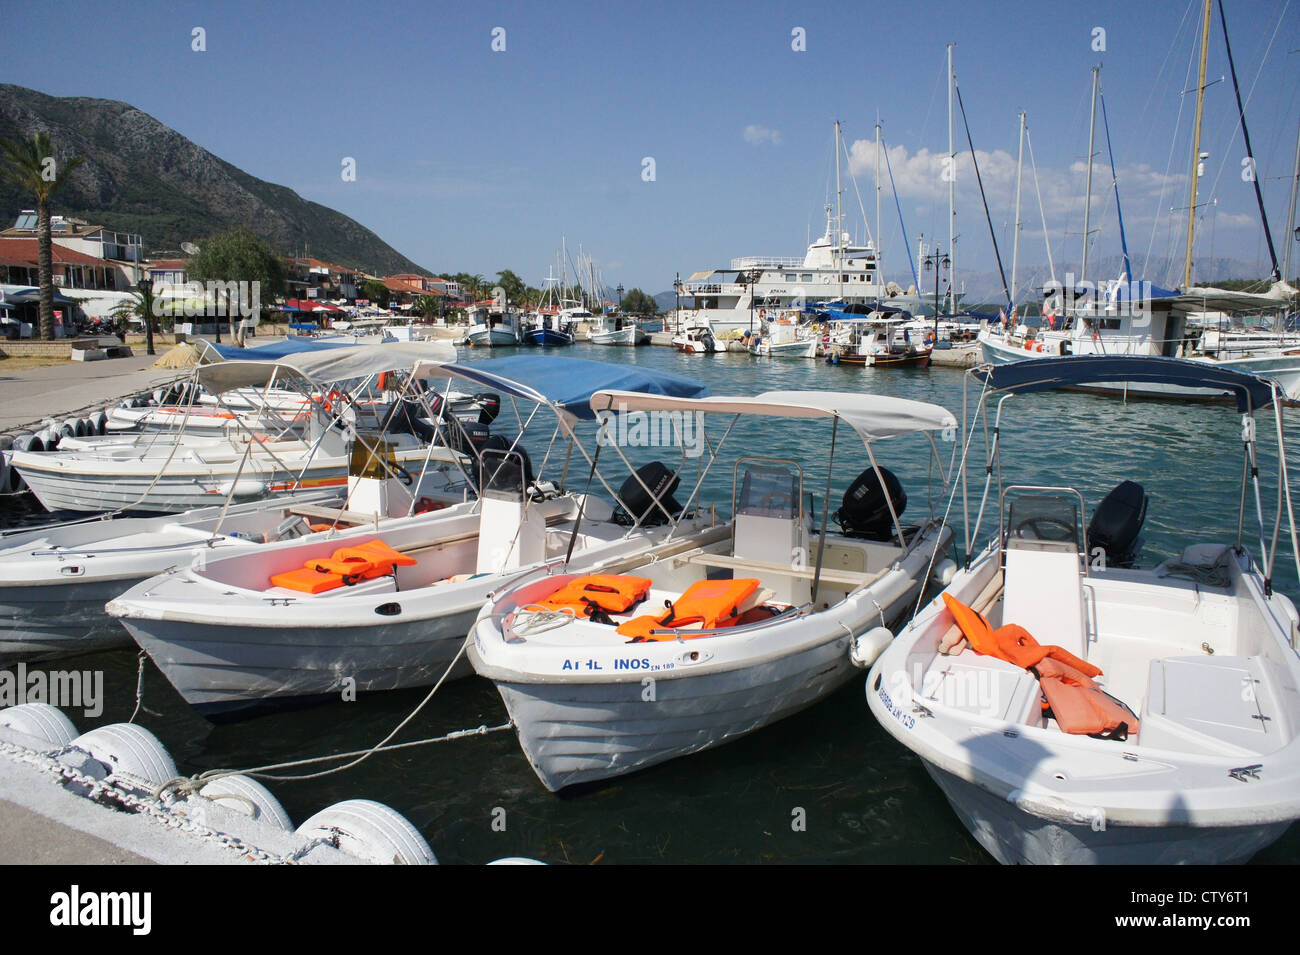 Charter boats at Nidri Harbour, Ionian Islands, Greece - Stock Image